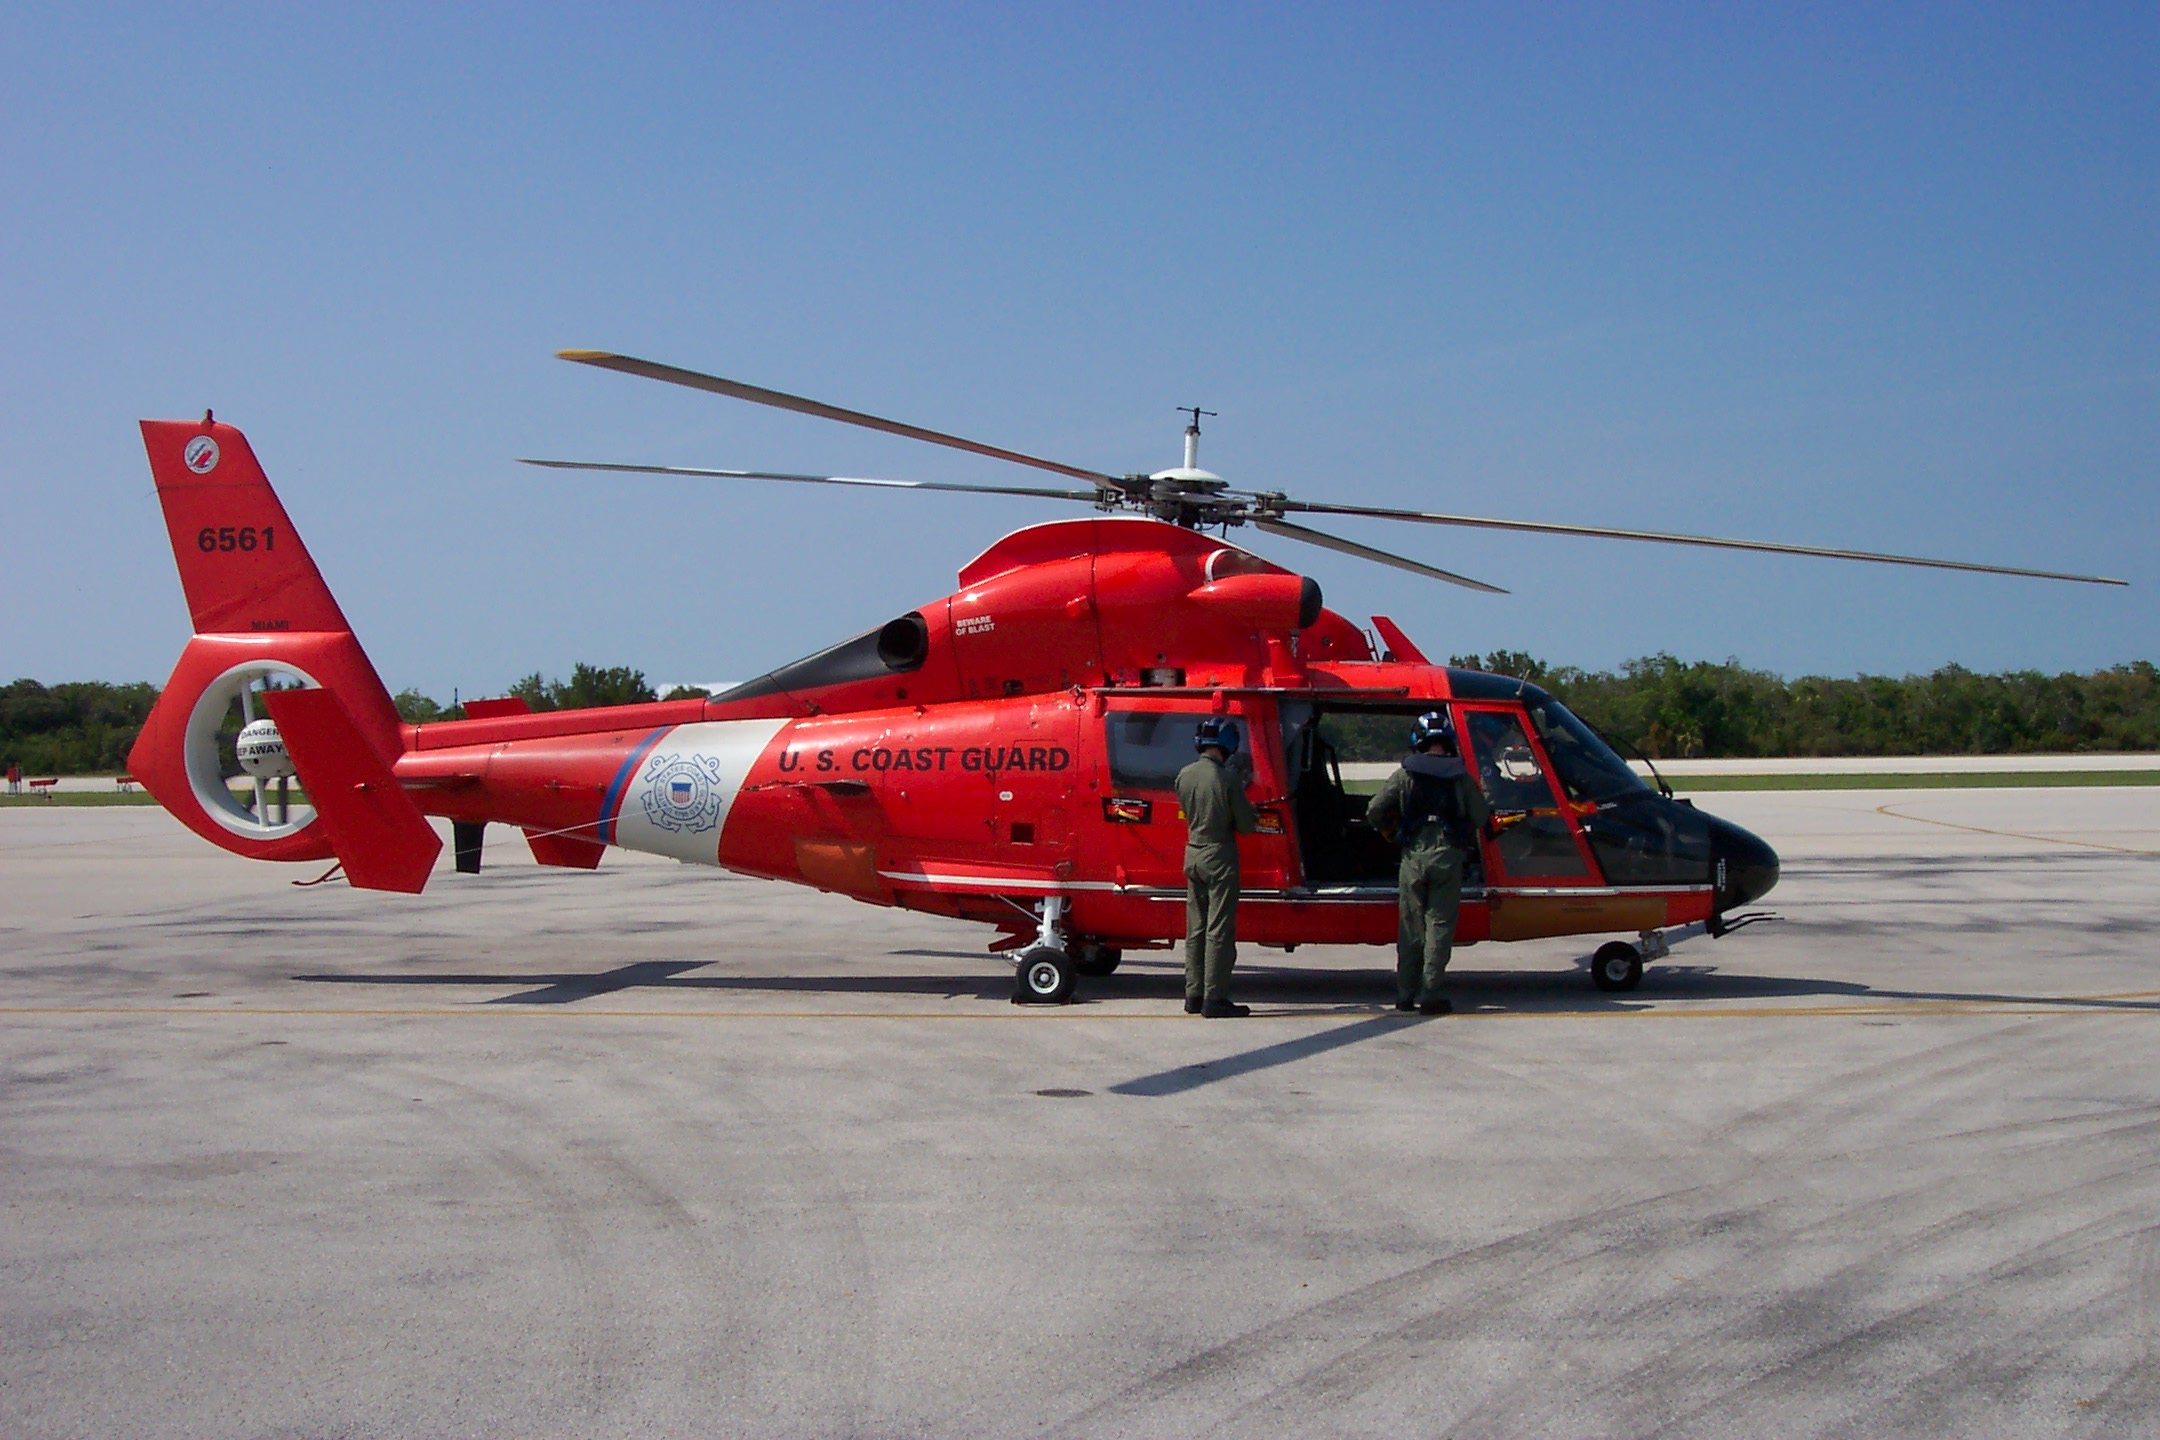 File:US Coast Guard HH-65 Dolphin Helicopter.JPG - Wikipedia